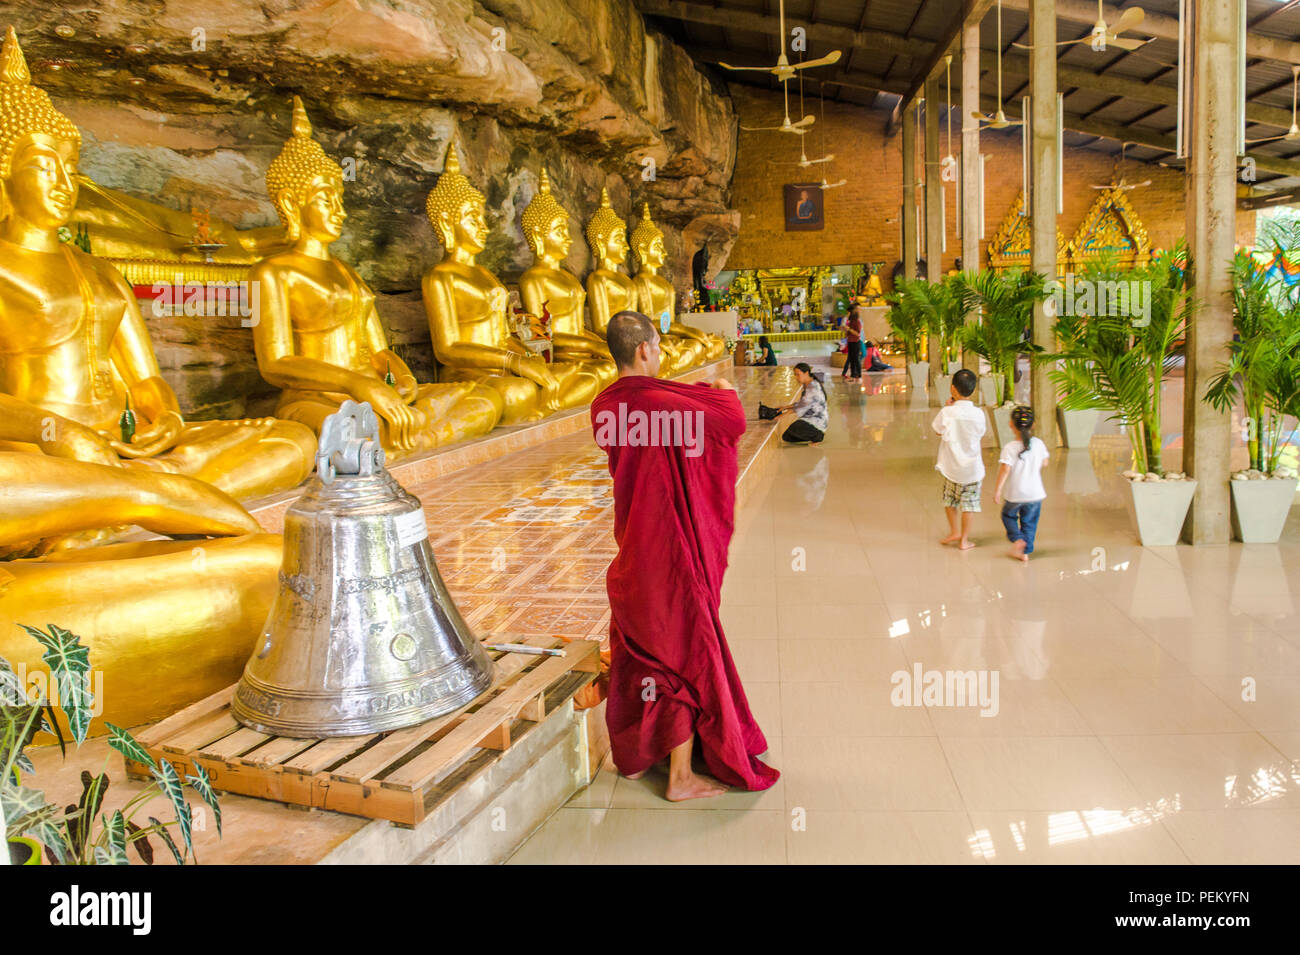 Temple in Ubon Ratchathani province, Northeast (Isan) Region, Thailand - Stock Image